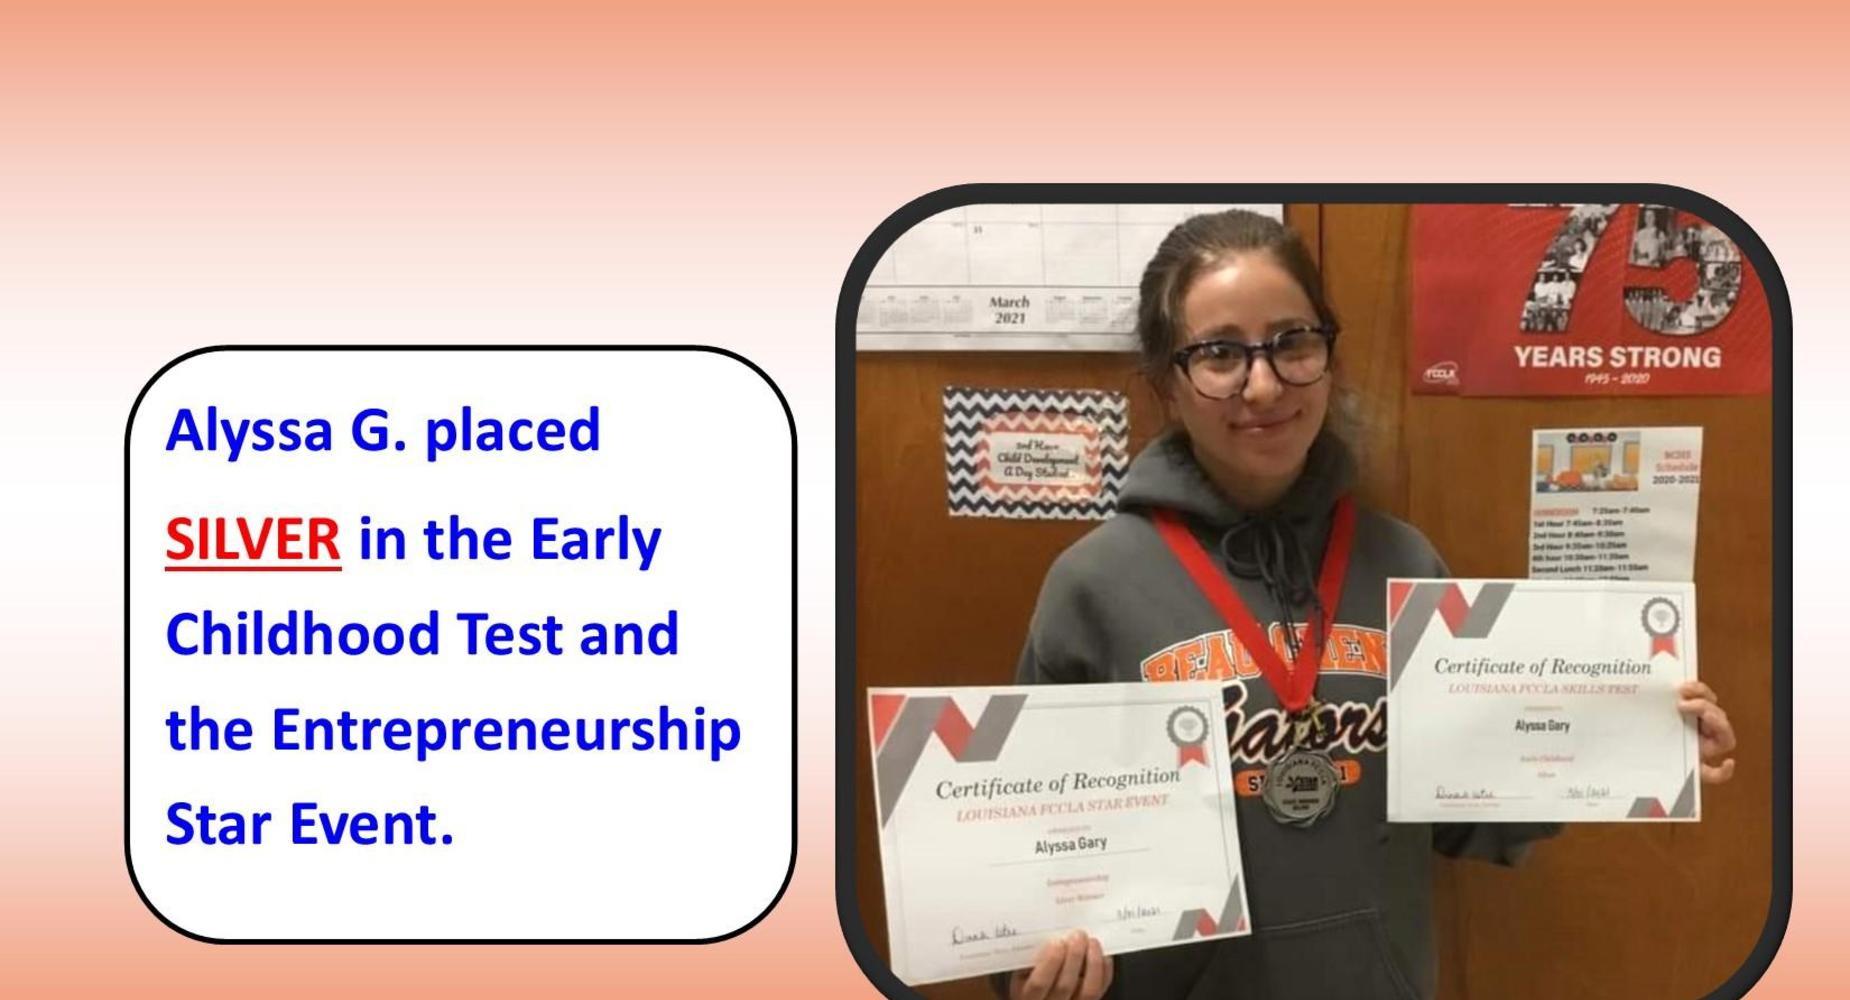 Alyssa Gary placed Silver in the Early Childhood Test & Silver in the Entrepreneurship Star Event